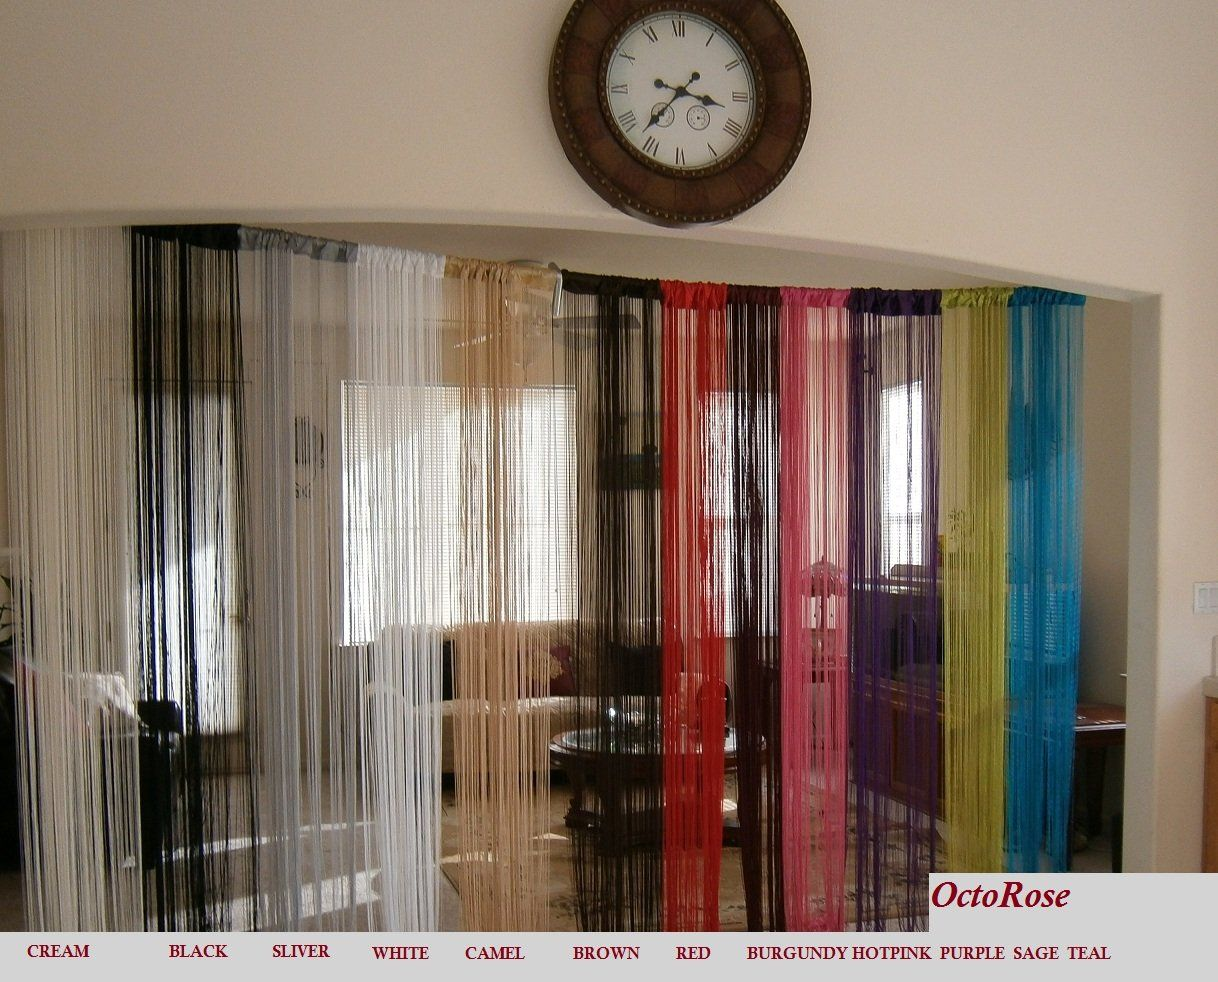 door divider String Curtain for window party events room screen wall decor